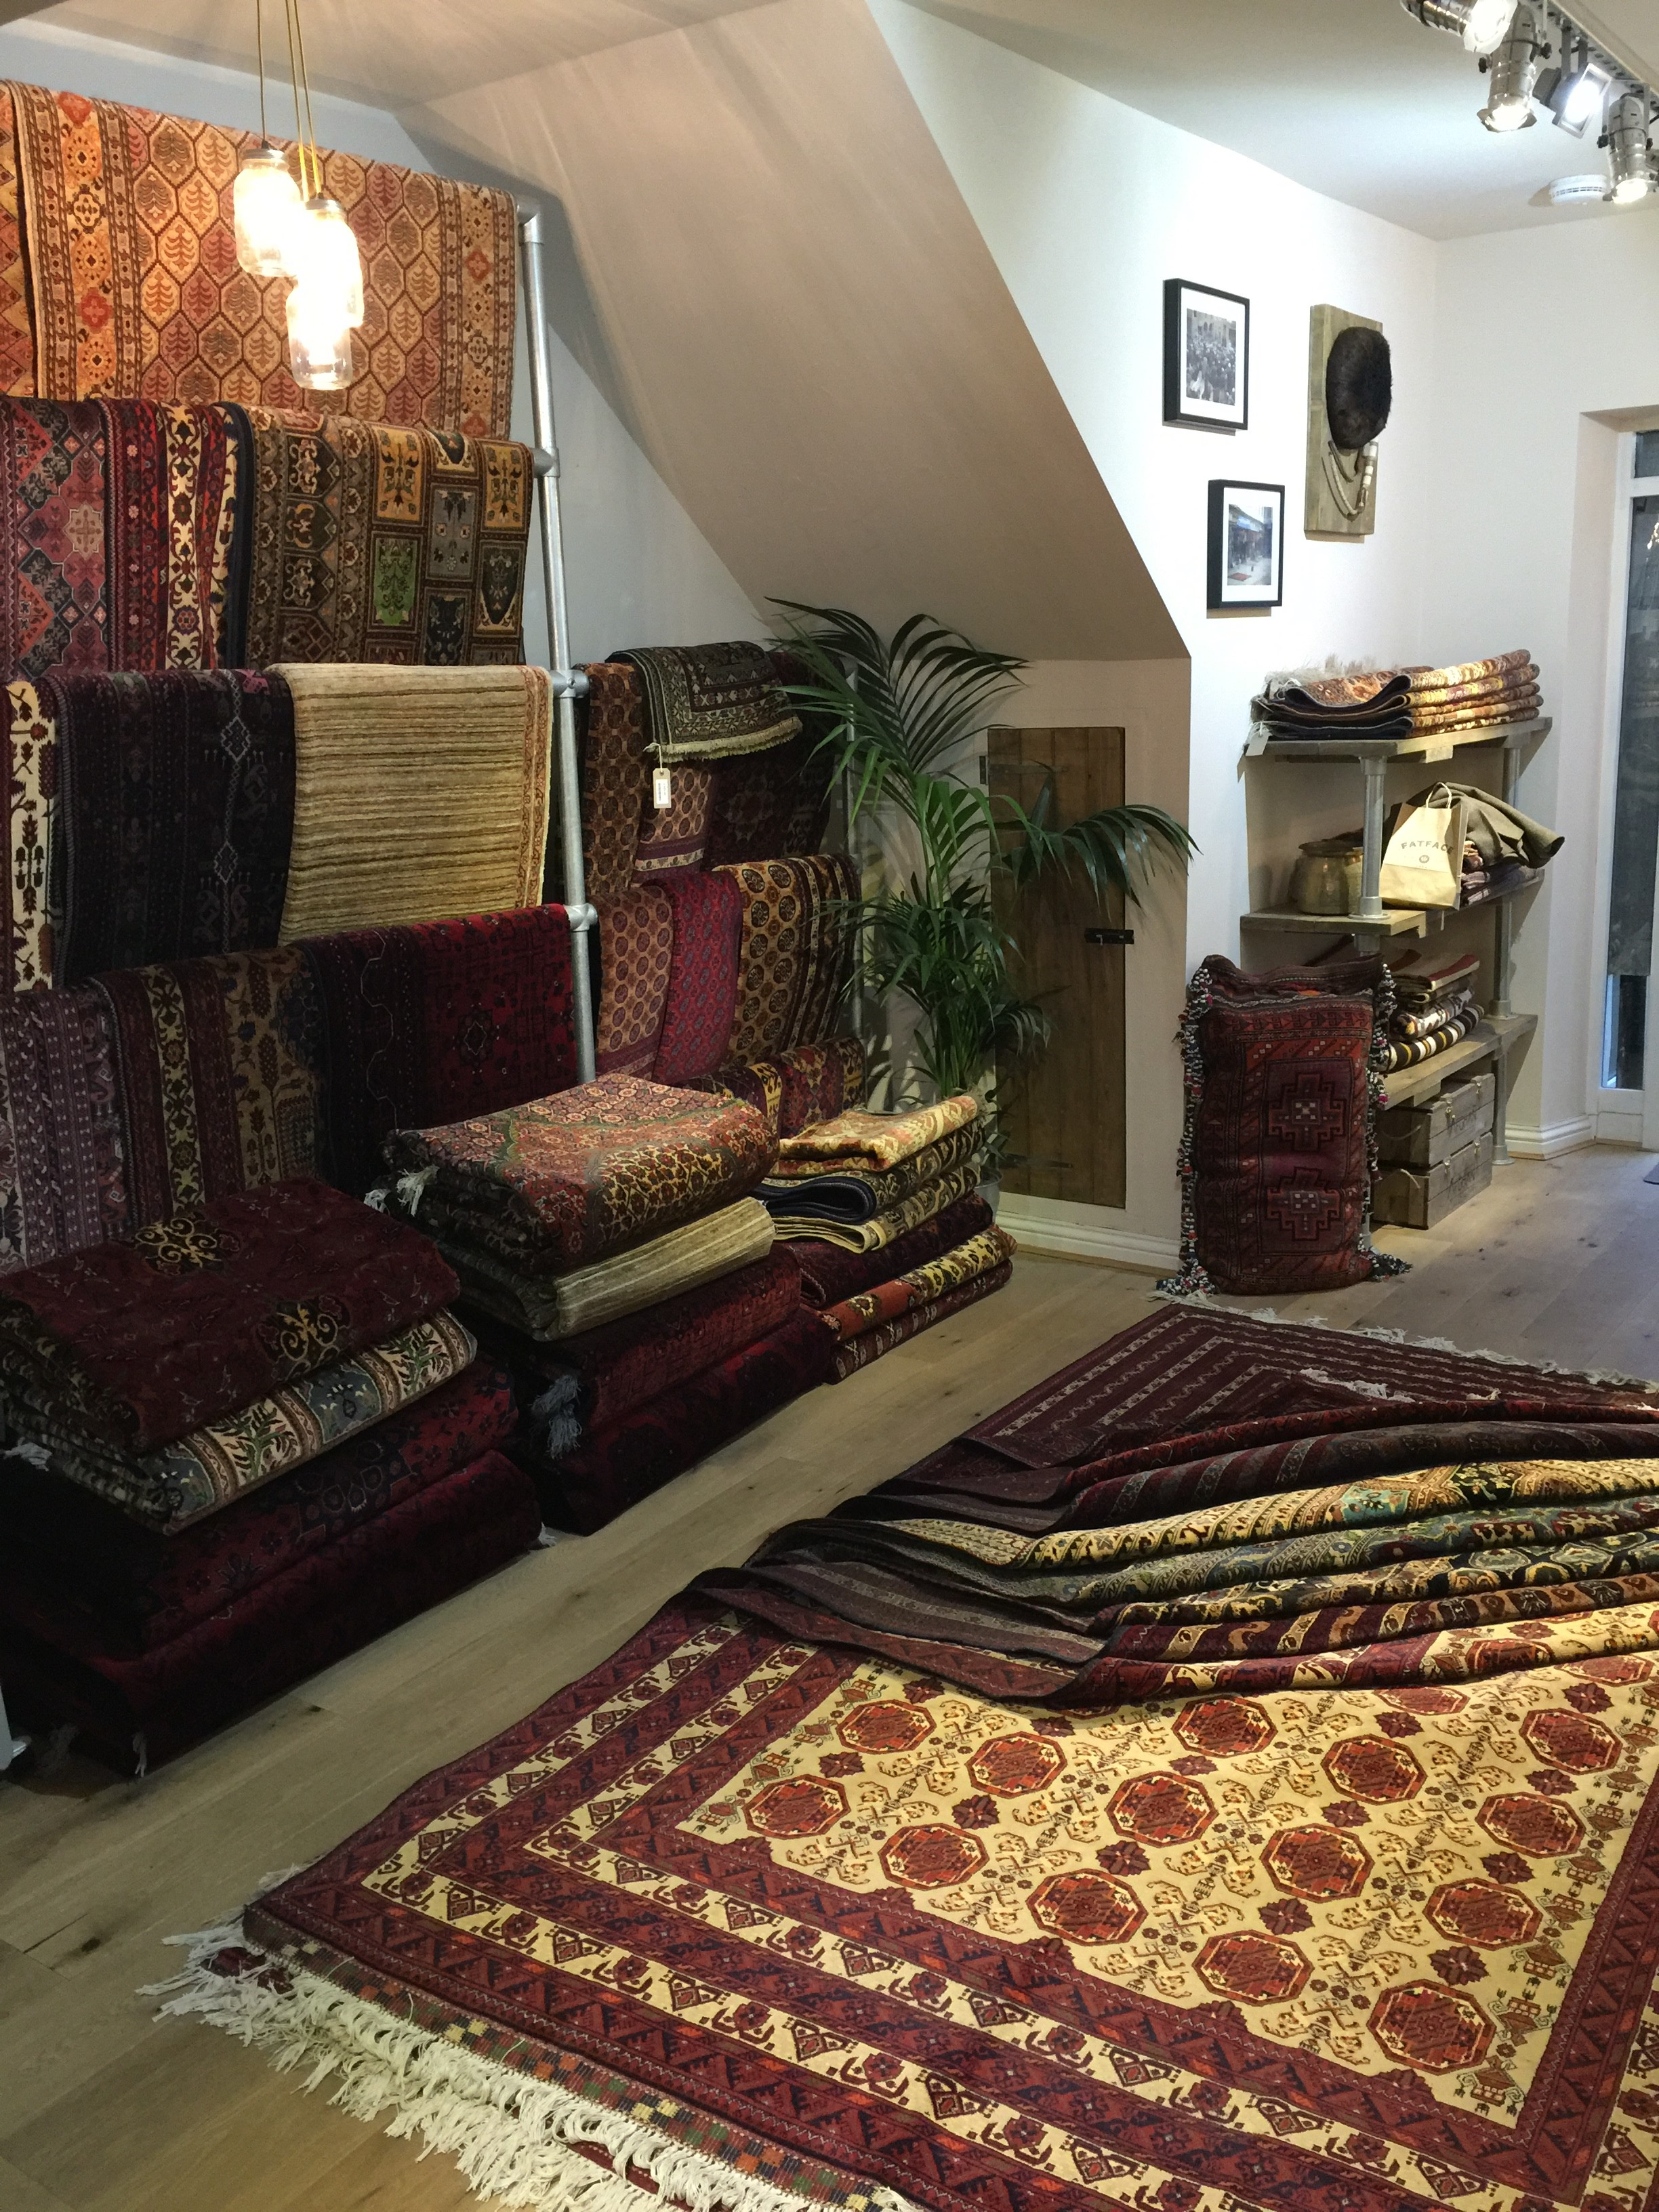 Afghan rug shop 2- interior